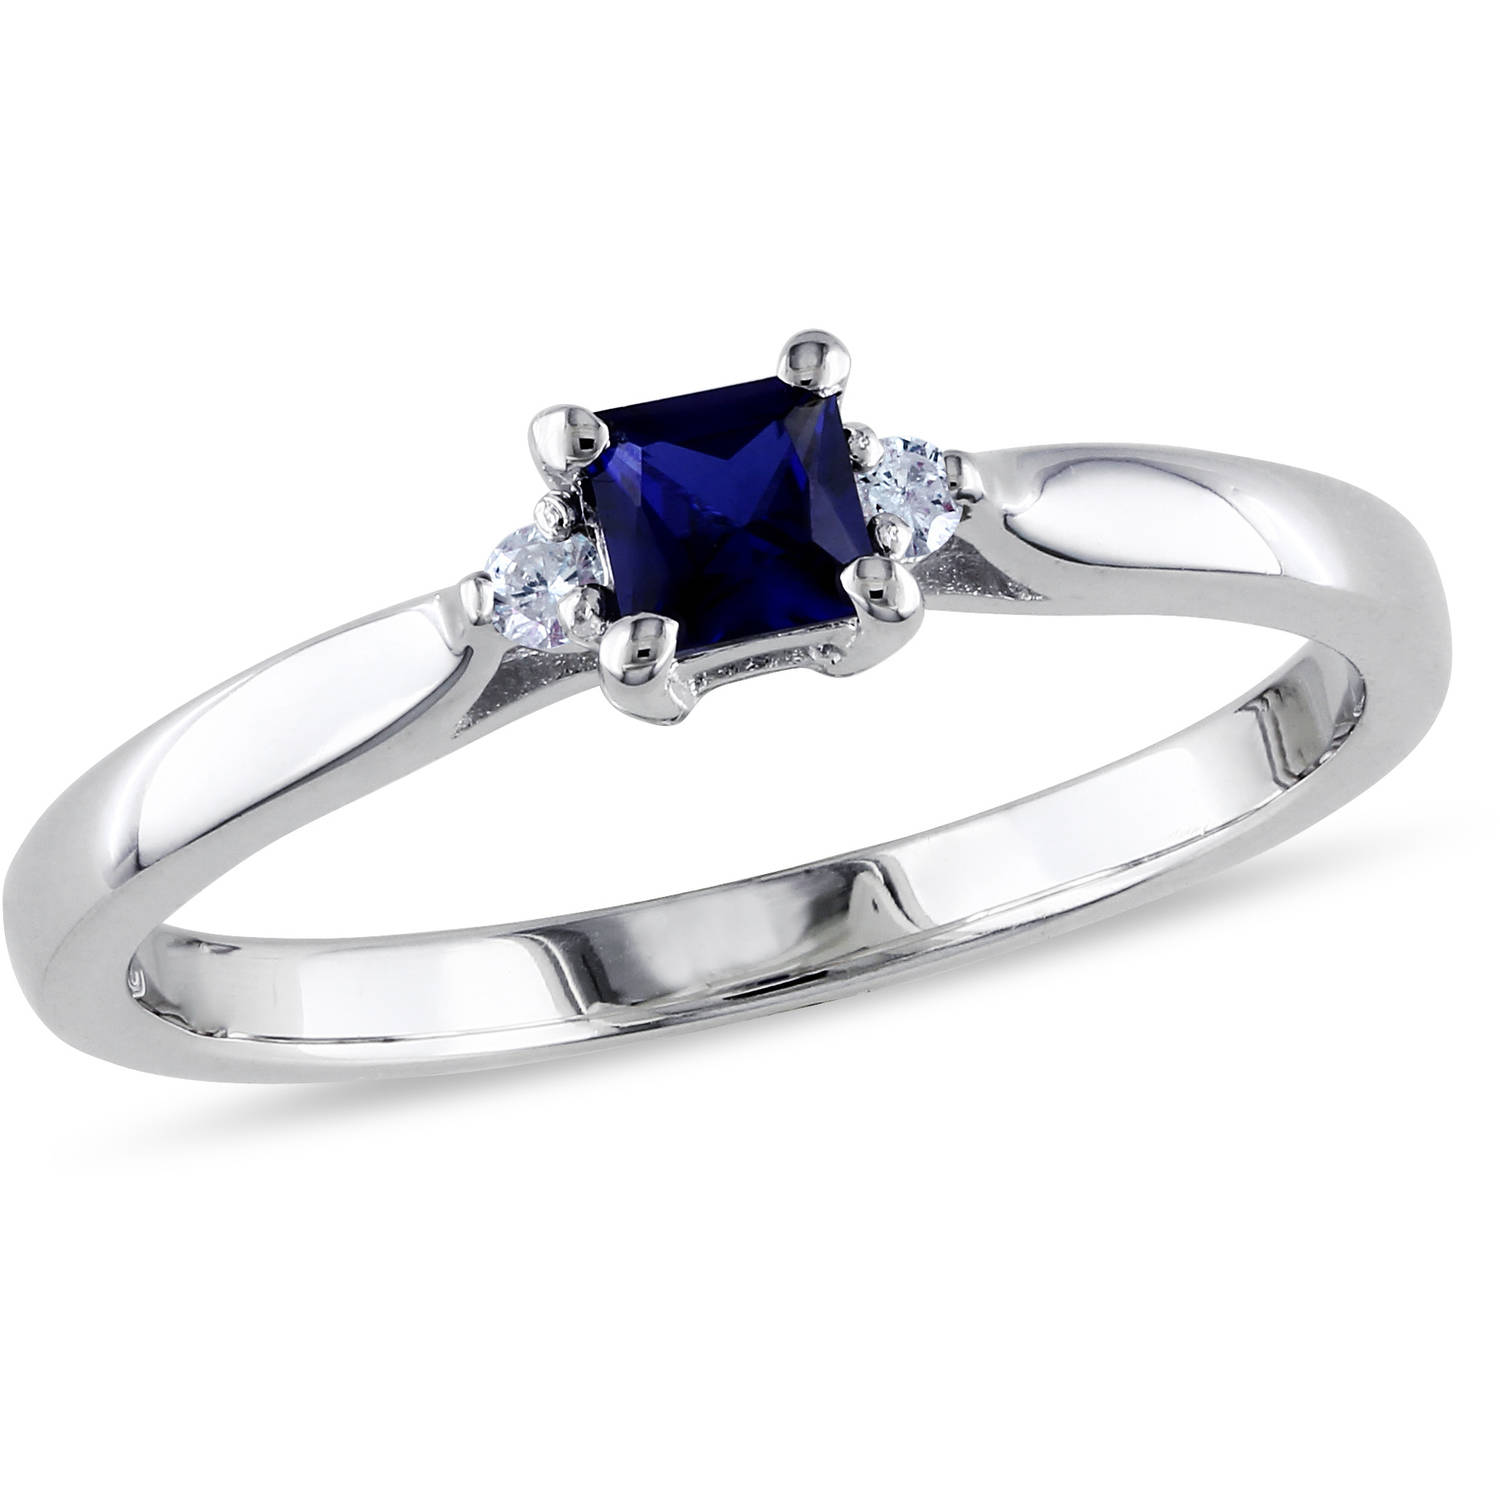 Tangelo 1 3 Carat T G W  Princess Cut Created Blue Sapphire and     Tangelo 1 3 Carat T G W  Princess Cut Created Blue Sapphire and Diamond Accent  Sterling Silver Engagement Ring   Walmart com